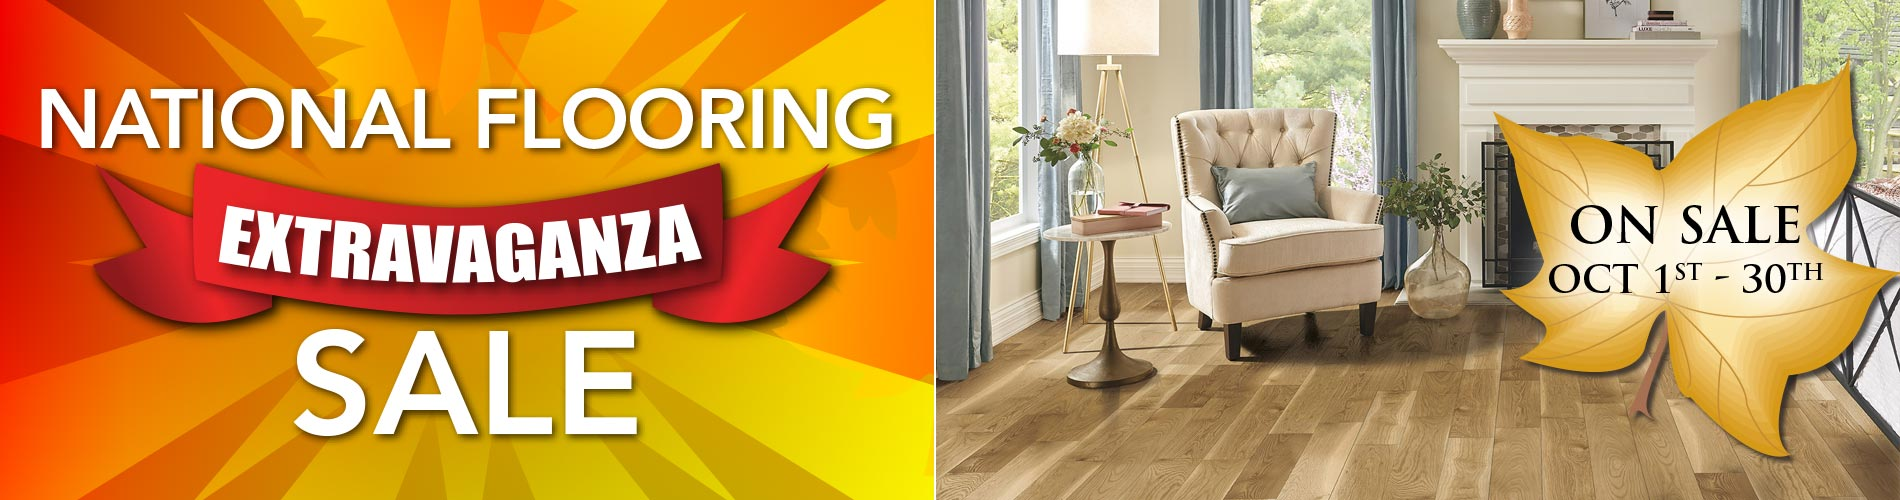 National Flooring Extravaganza Sale going on now at Nu Floors To Go in Tuscaloosa, Alabama! Hurry, sale ends October 30th!